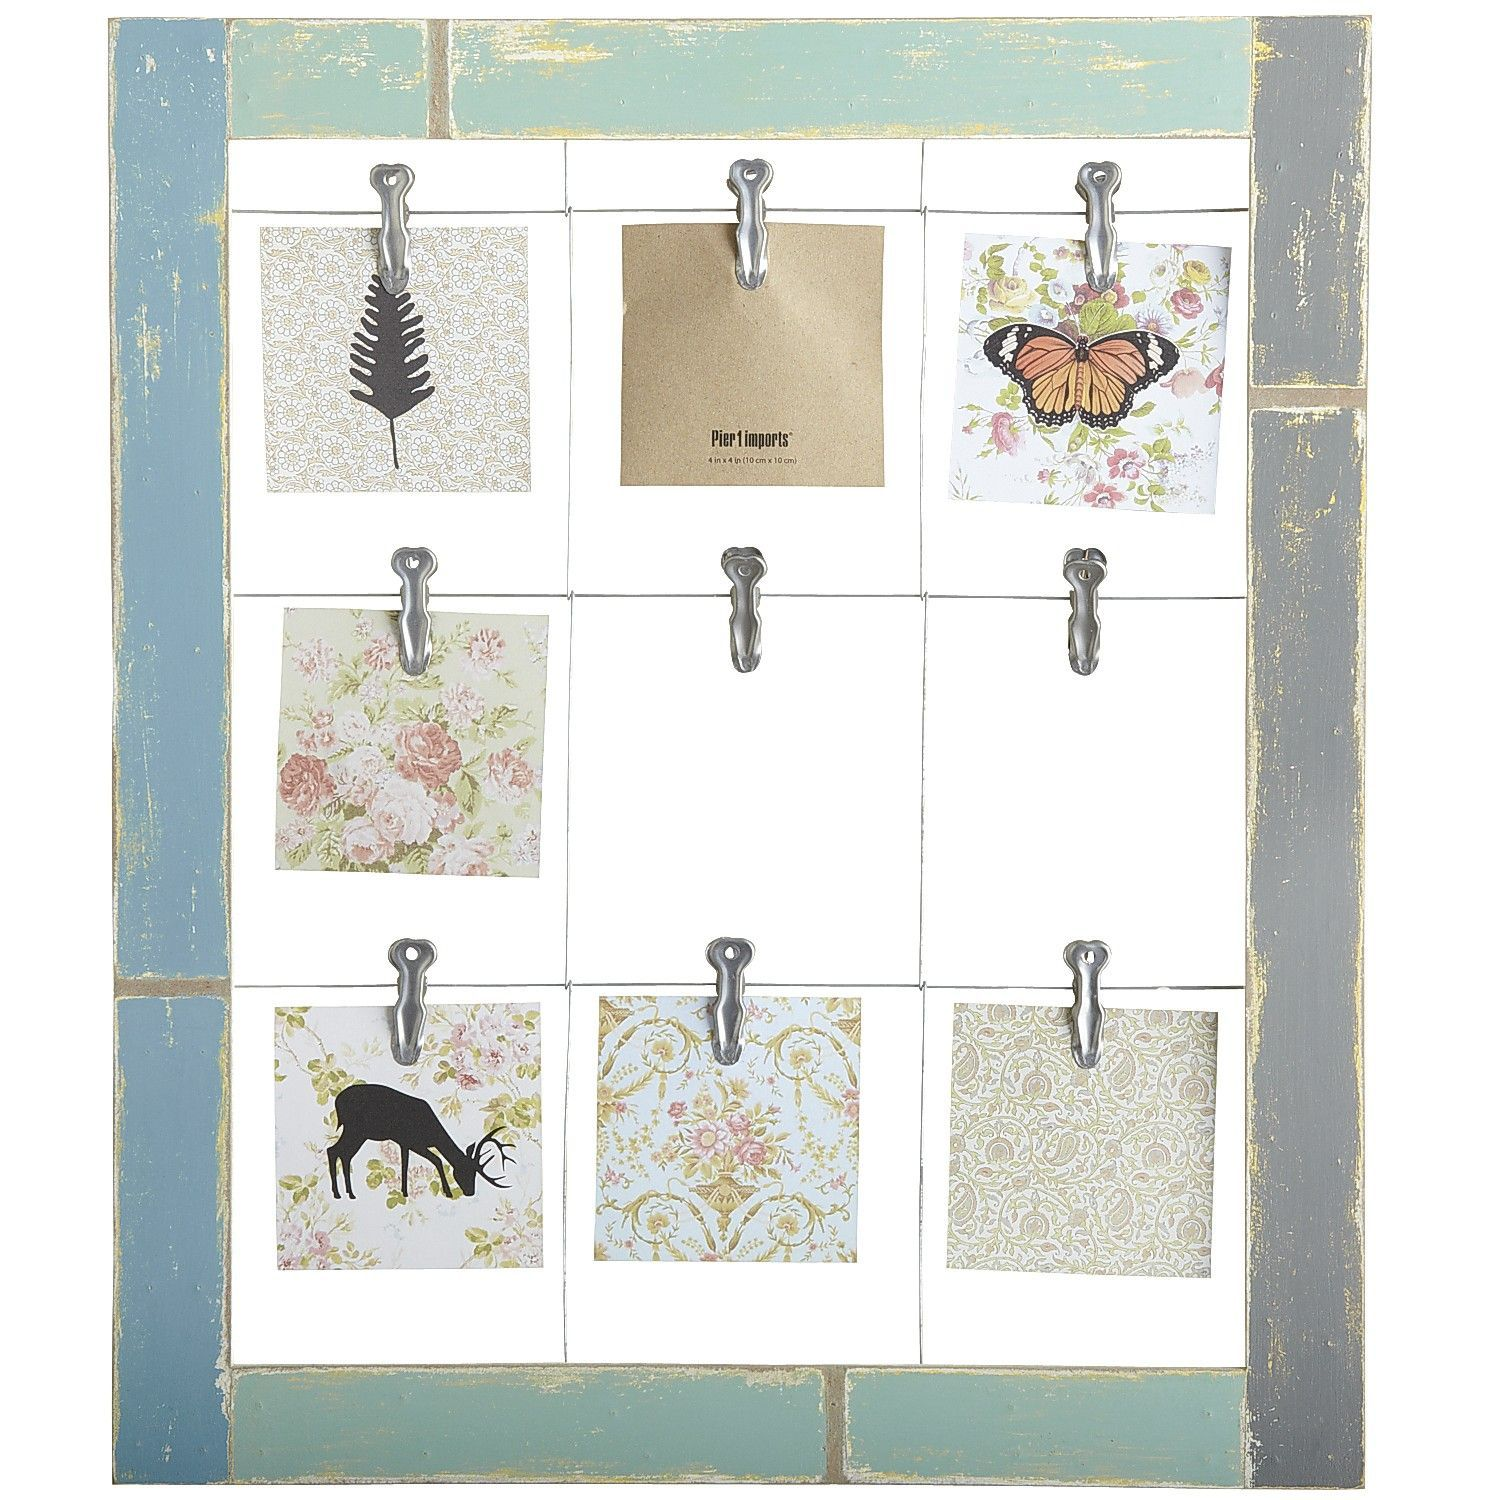 vintage window clip frame totally need this for my office or so e where - Window Clip Frame